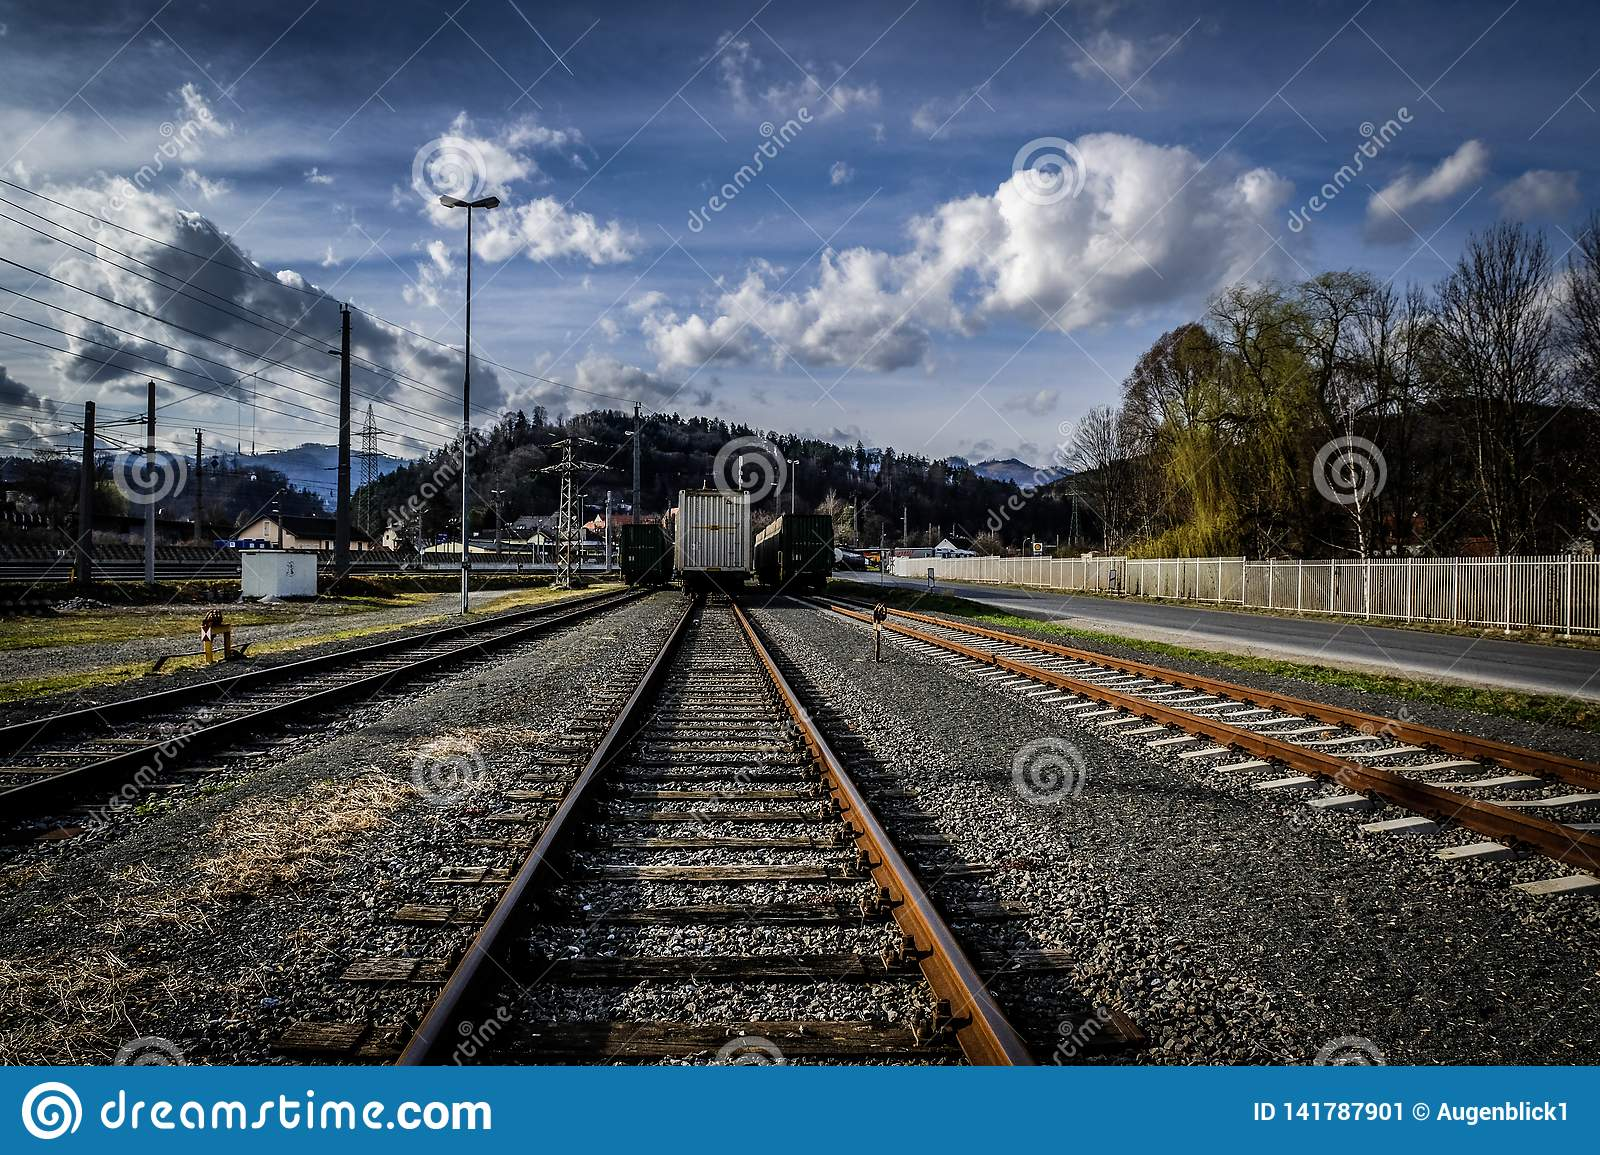 The Railway Tracks stock image  Image of directions - 141787901